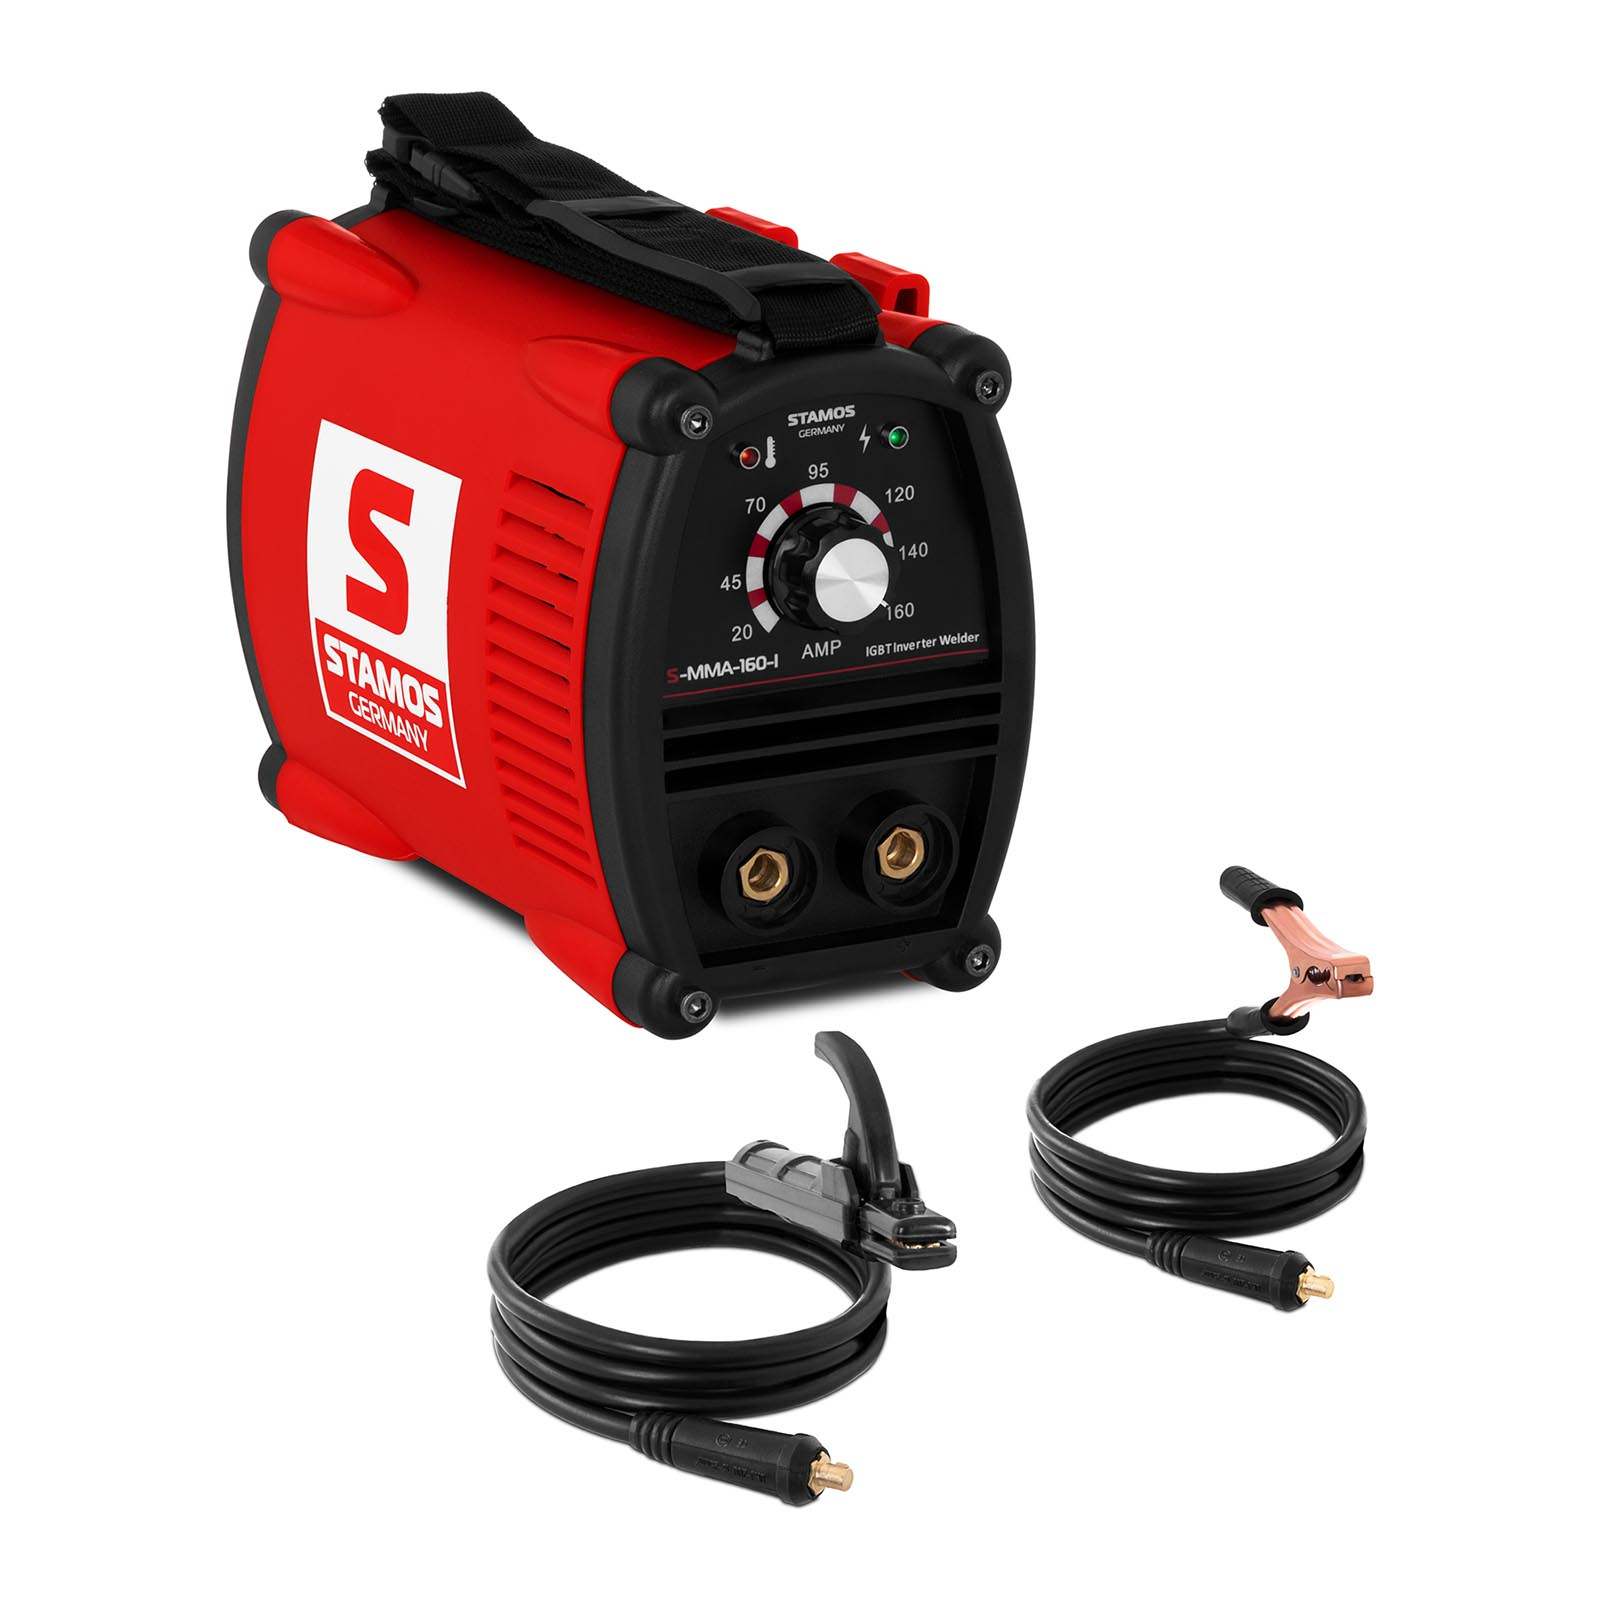 Machine Mma Portable 120 Welding Dc Inverter For Igbt Circuit Manufacturers In Lulusoso Kids